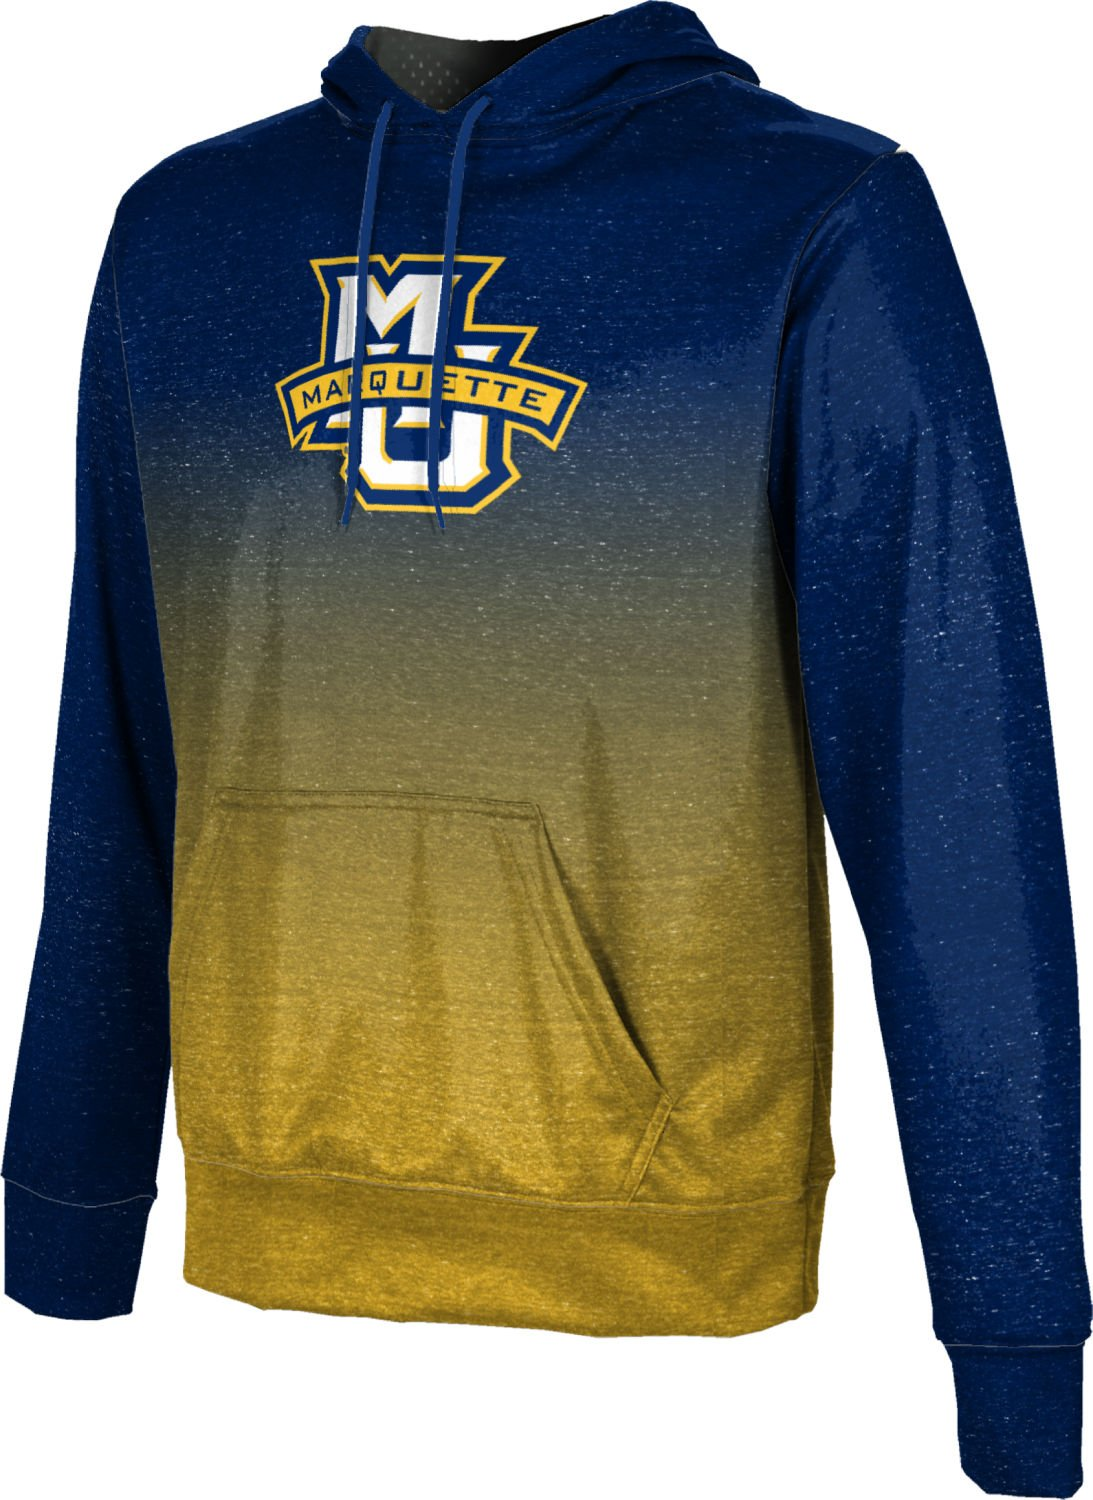 ProSphere Marquette University Boys' Pullover Hoodie, School Spirit Sweatshirt (Ombre) FD001 Navy and Gold